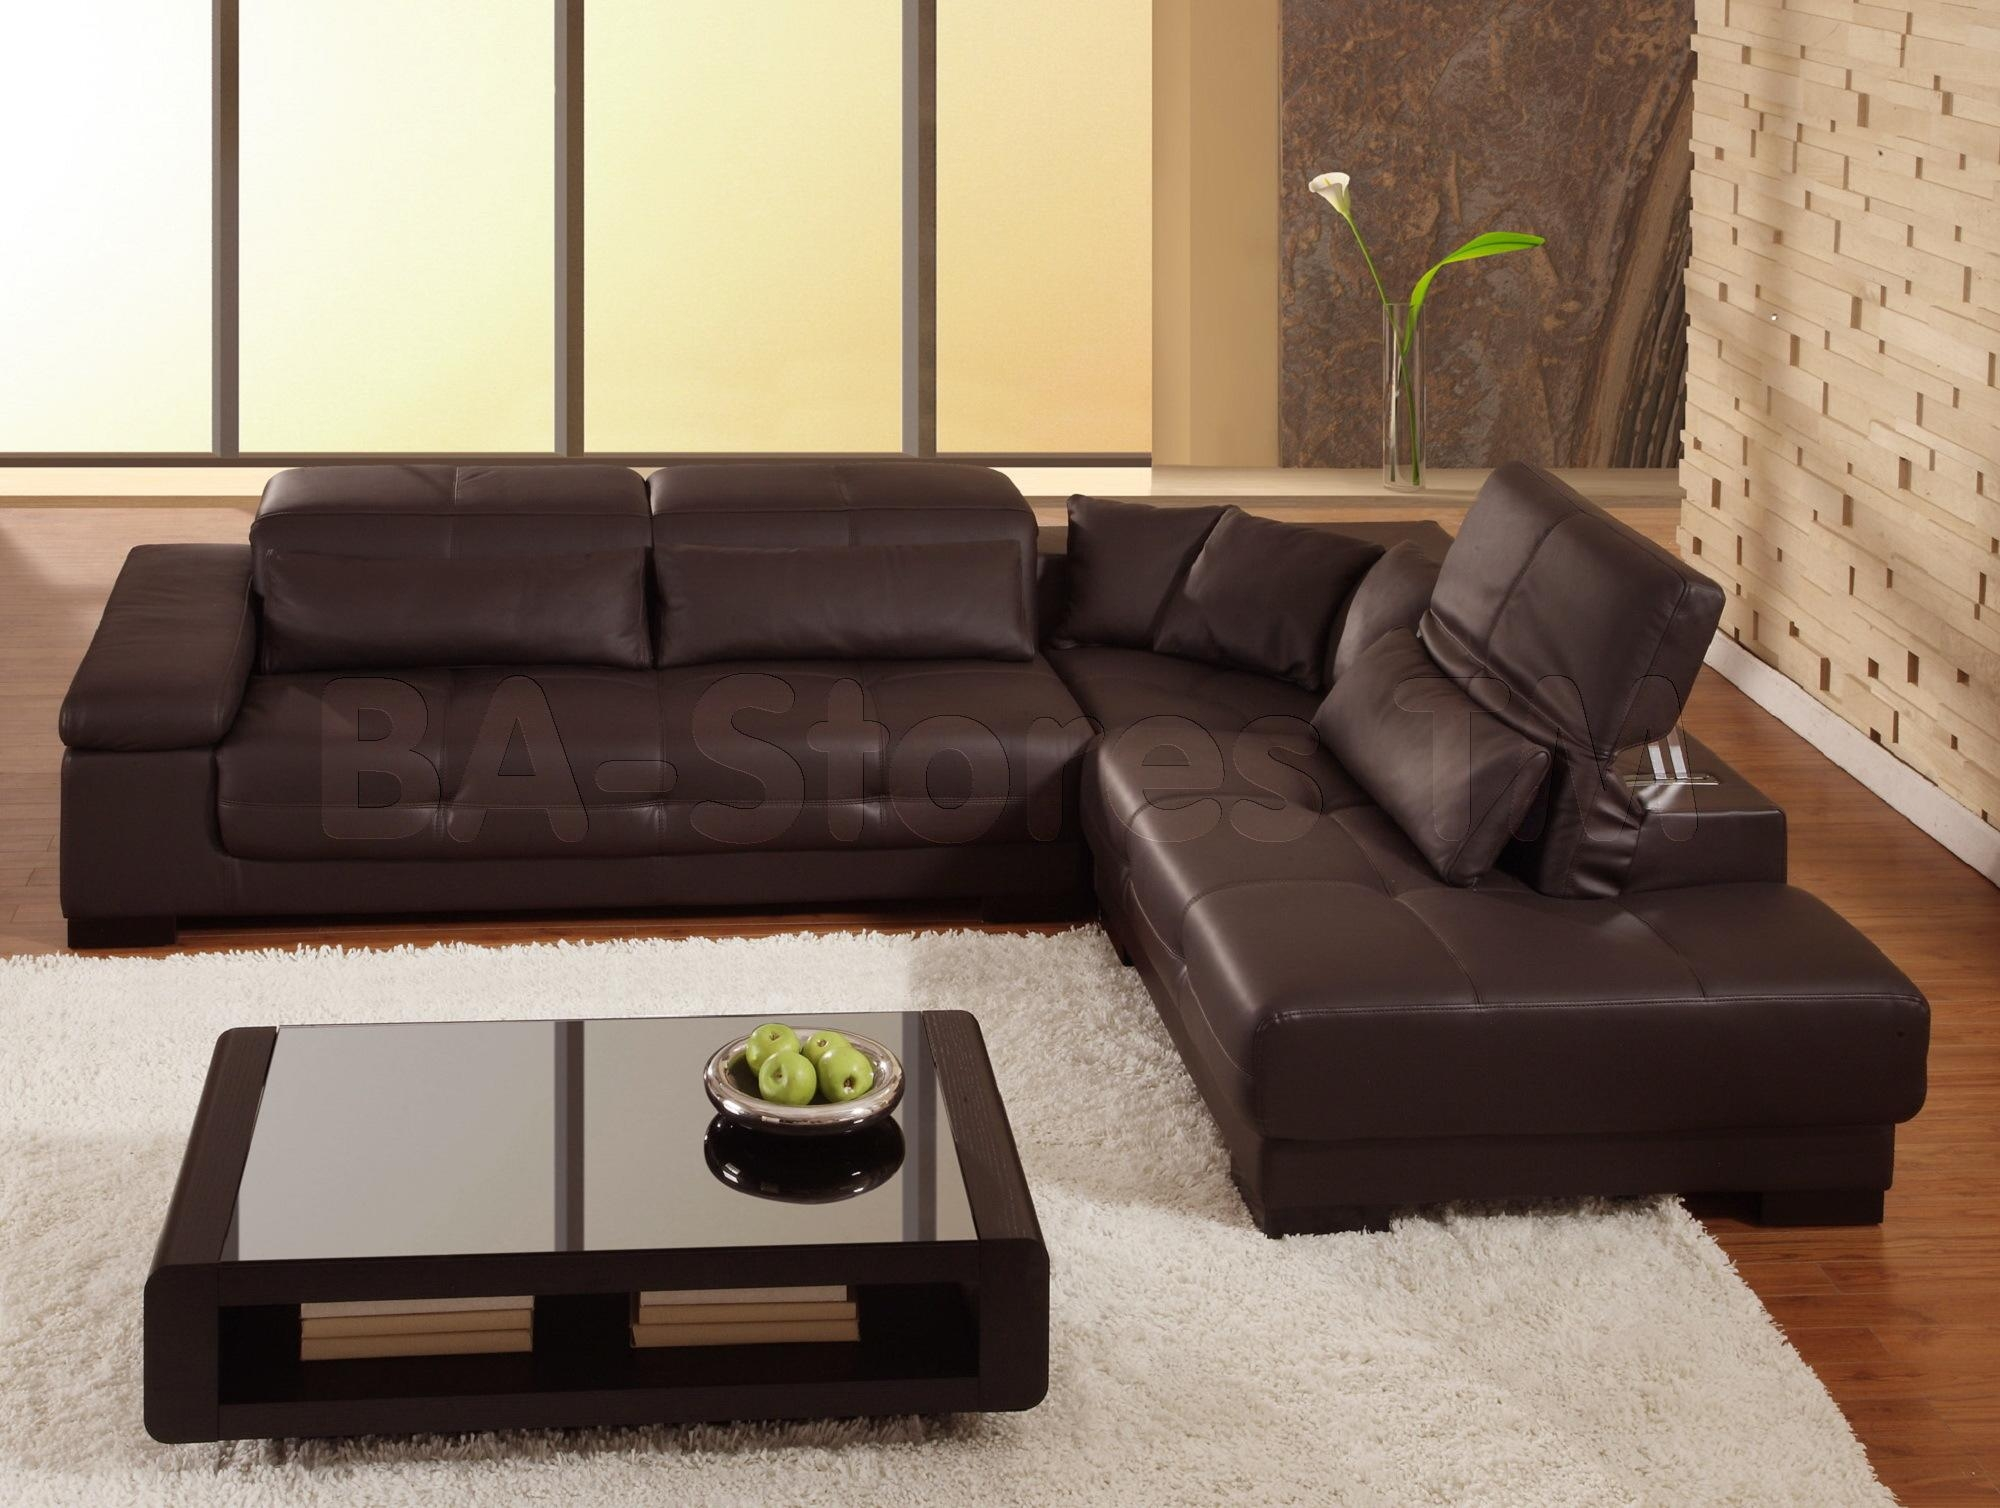 Velvet Sofas Sectionals – Leather Sectional Sofa Intended For Velvet Sofas Sectionals (View 4 of 20)